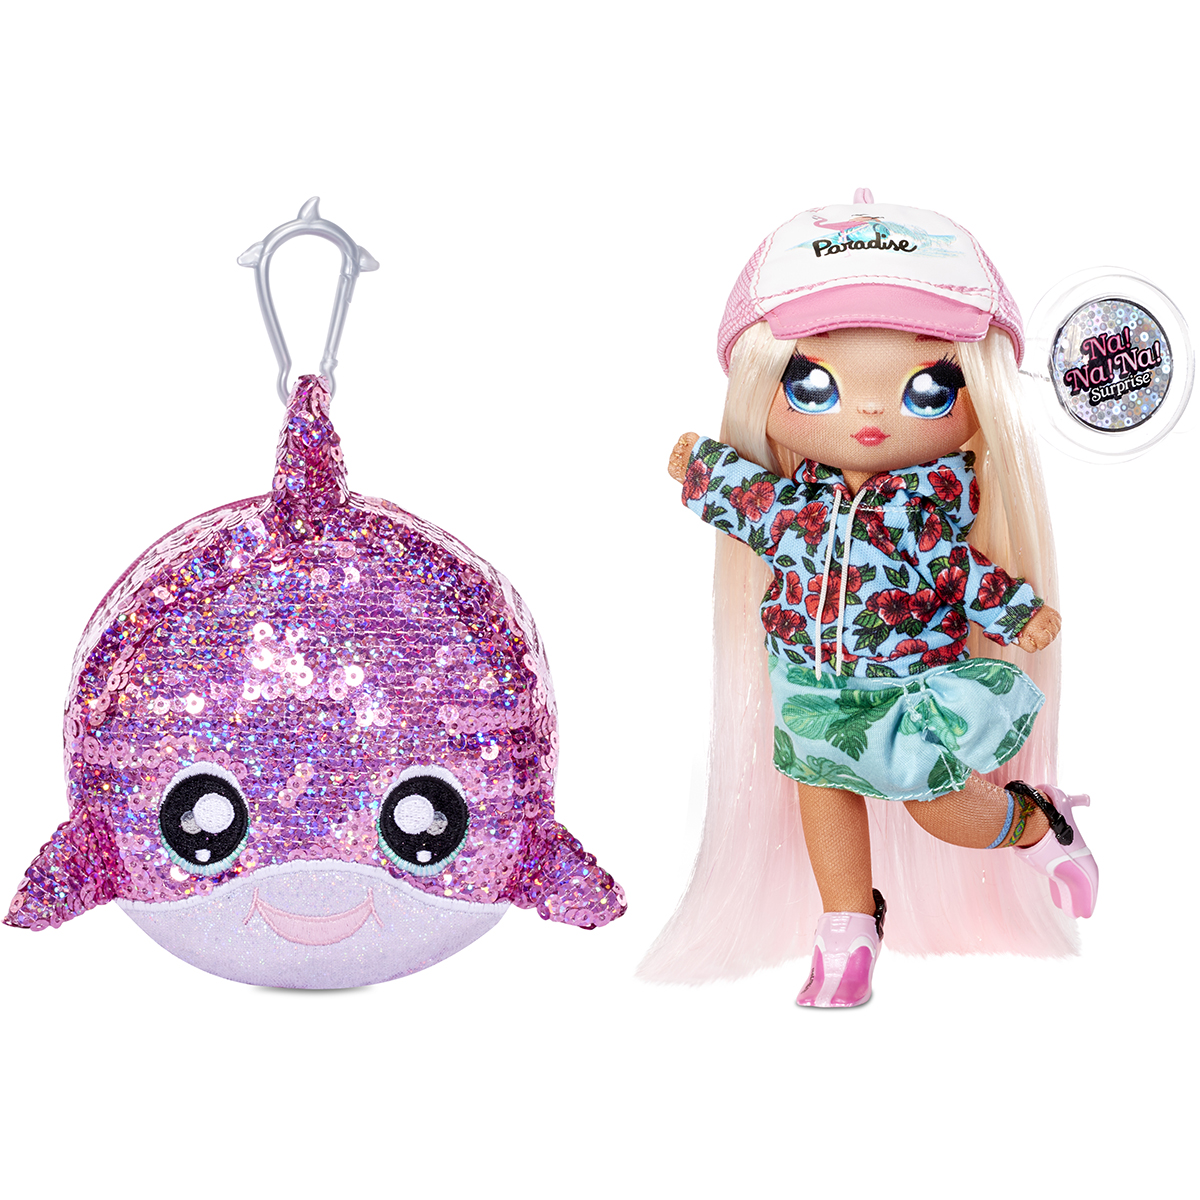 Na Na Na Surprise 2 in 1, Sparkle S1 - Papusa si accesoriu fashion, Krysta Splash, 573760